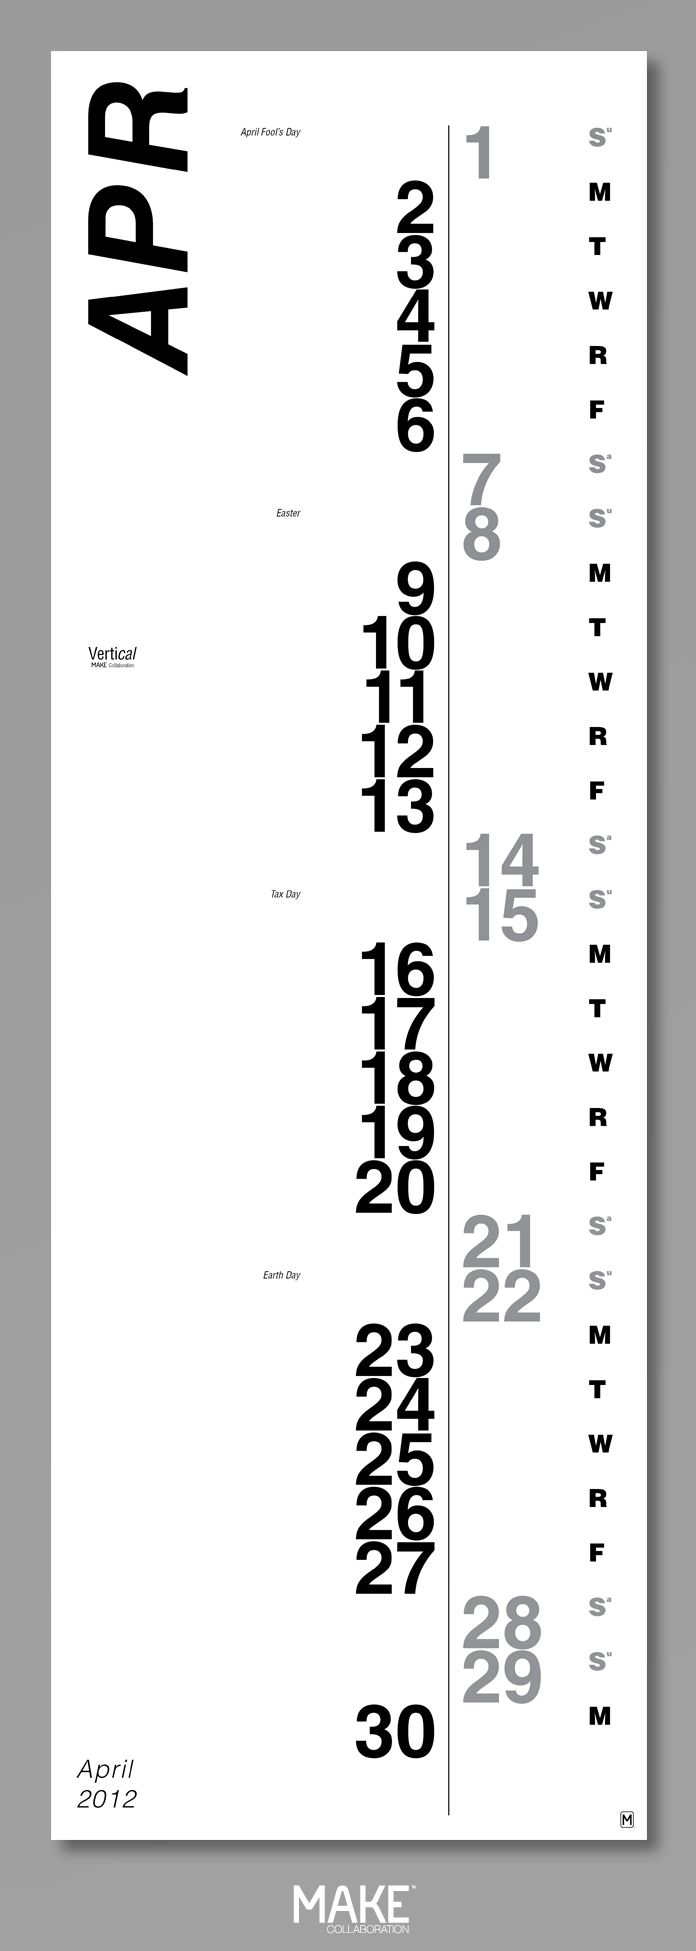 Vertical Calendar Design : Great ideas about calendar on pinterest paint chip